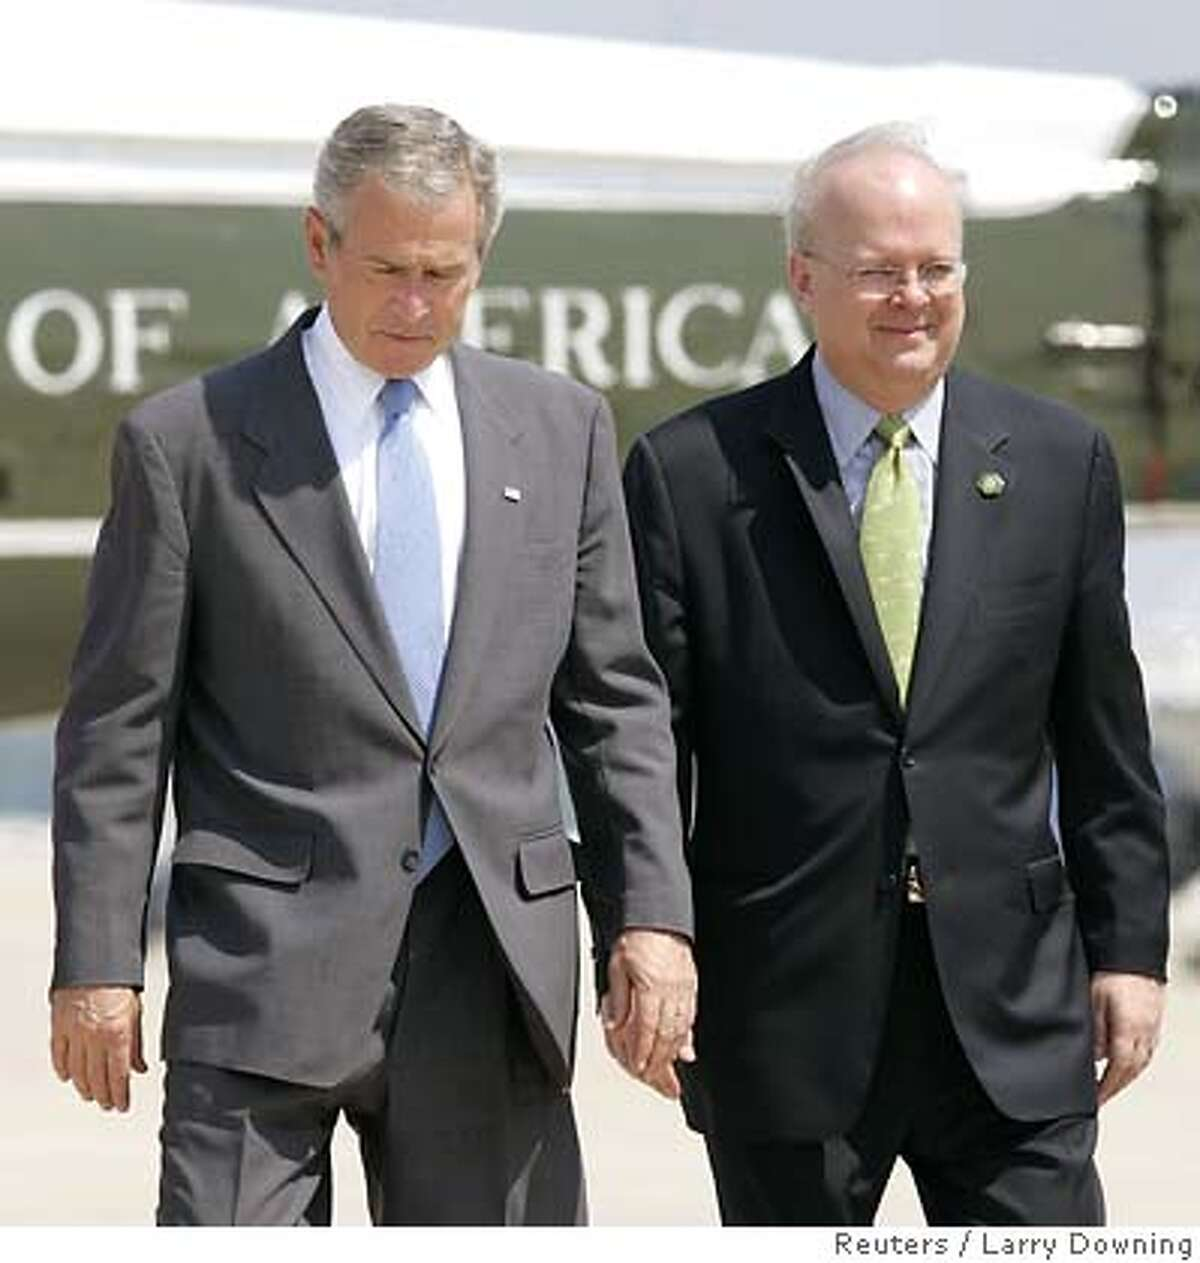 U.S. President George W. Bush and his senior advisor Karl Rove (R) walk towards Air Force One at Andrews Air Force Base outside Washington before departing for Texas August 13, 2007. Rove, who set the political strategy for U.S. President George W. Bush's two White House victories and became a favorite target for critics, said on Monday he was resigning and returning home to Texas. REUTERS/Larry Downing (UNITED STATES)